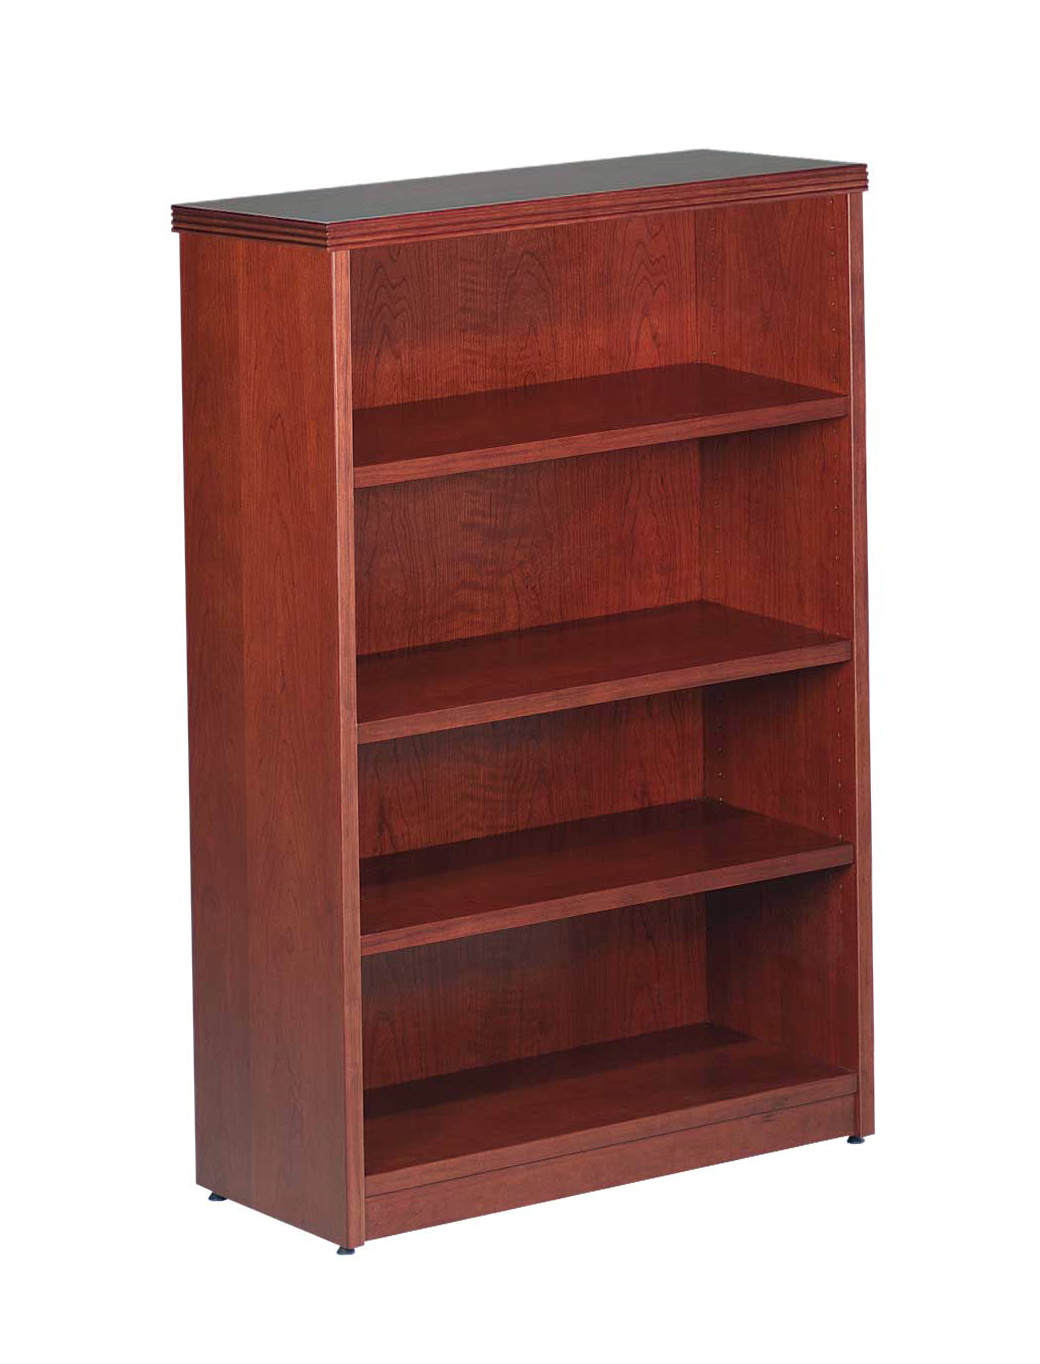 Solid Wood Bookcases Cherry